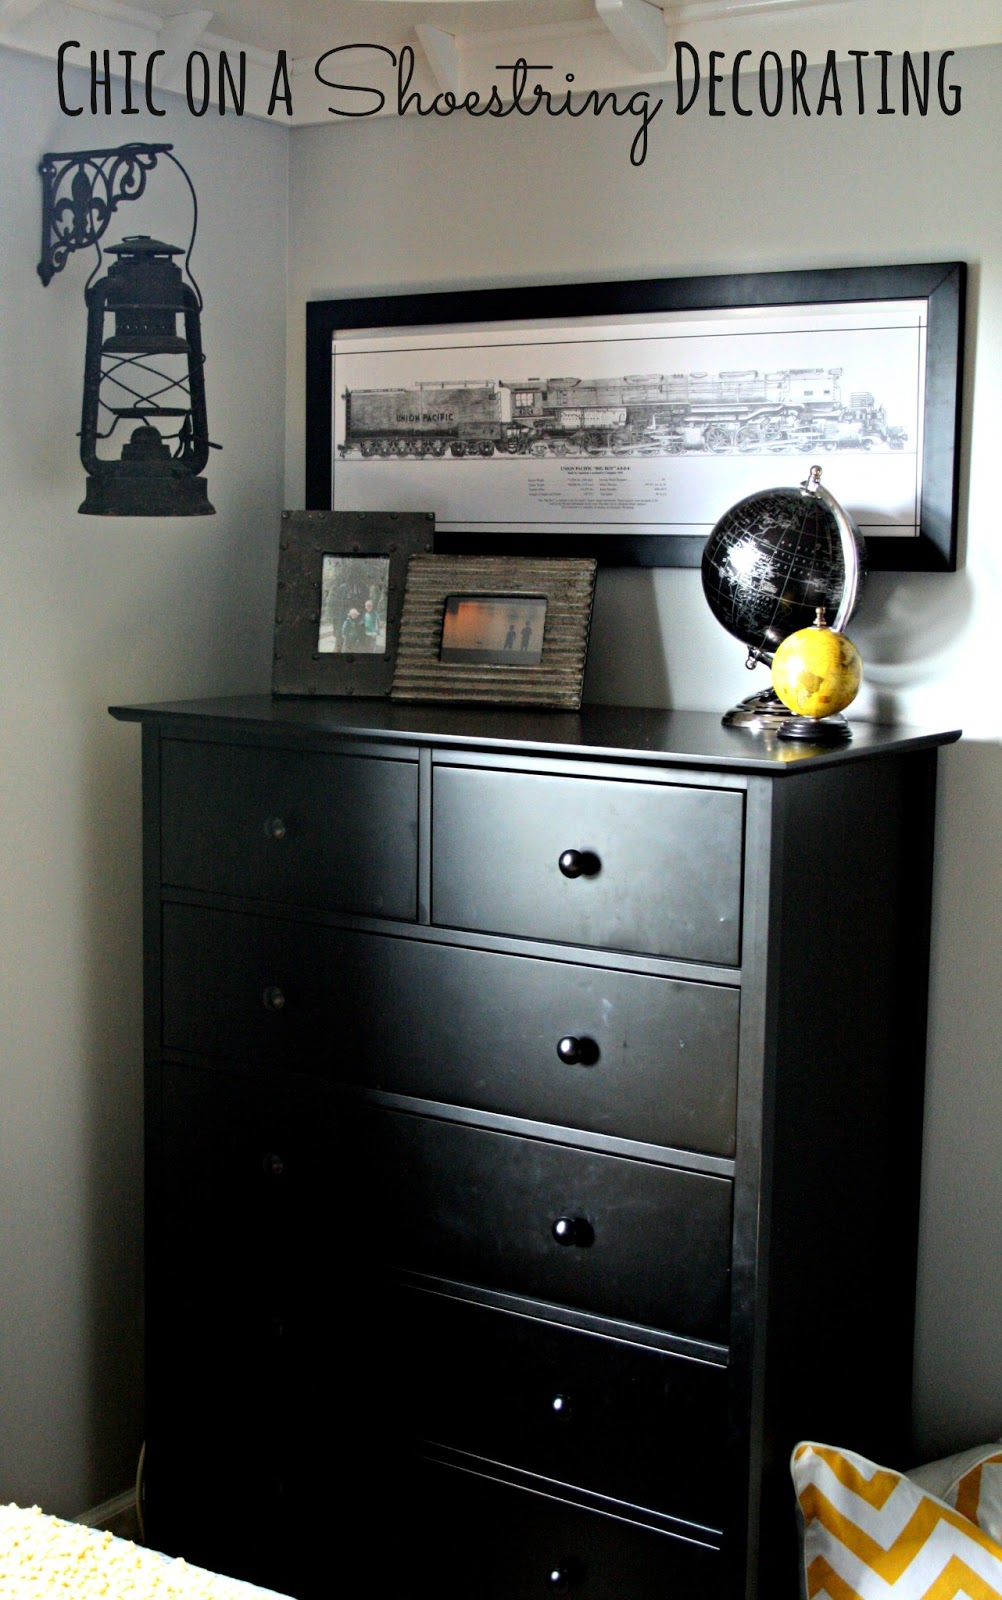 Boys Room: Chic On A Shoestring Decorating: Bigger Boy Room Reveal